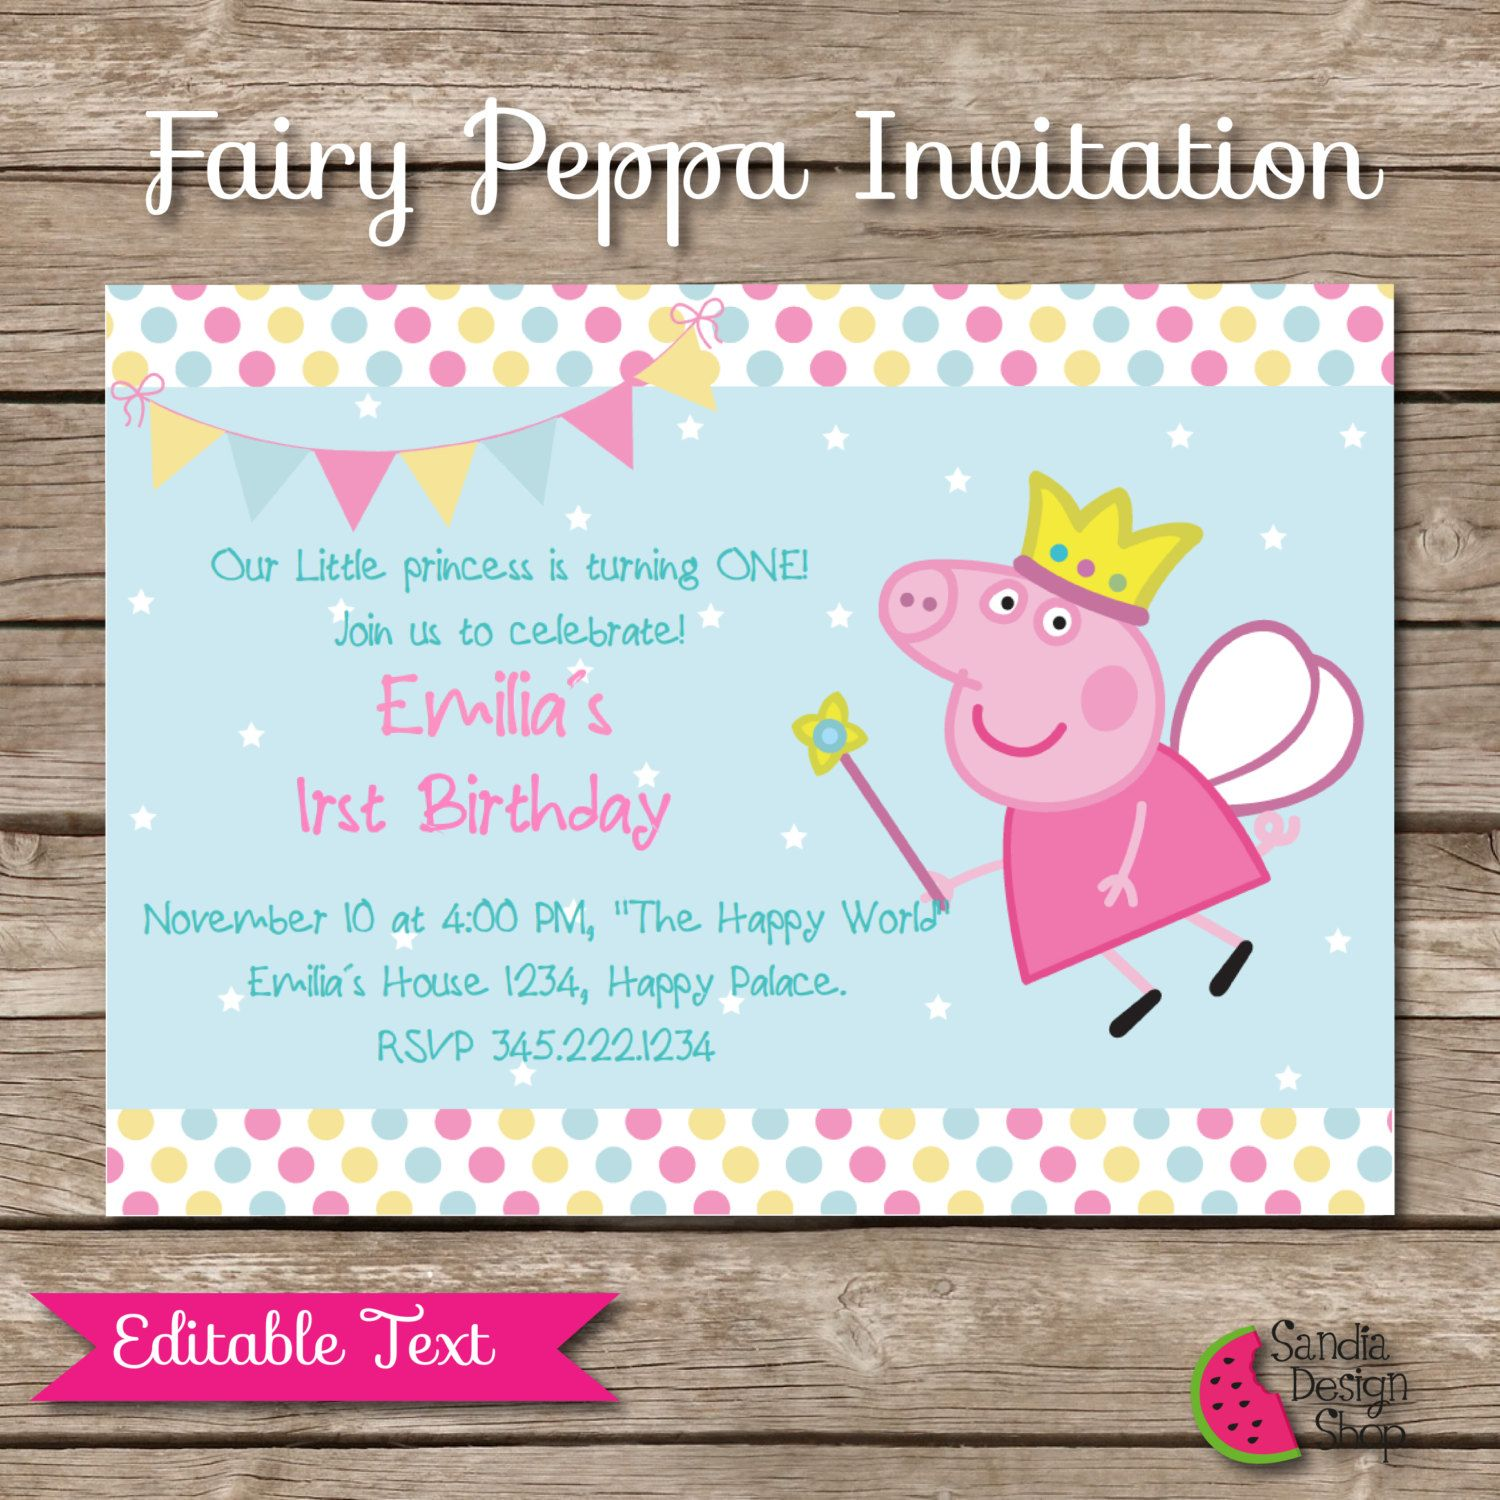 Peppa pig printable birthday invitation editable text fairy peppa peppa pig printable birthday invitation editable text fairy peppa invitation pepa la cerdita stopboris Image collections